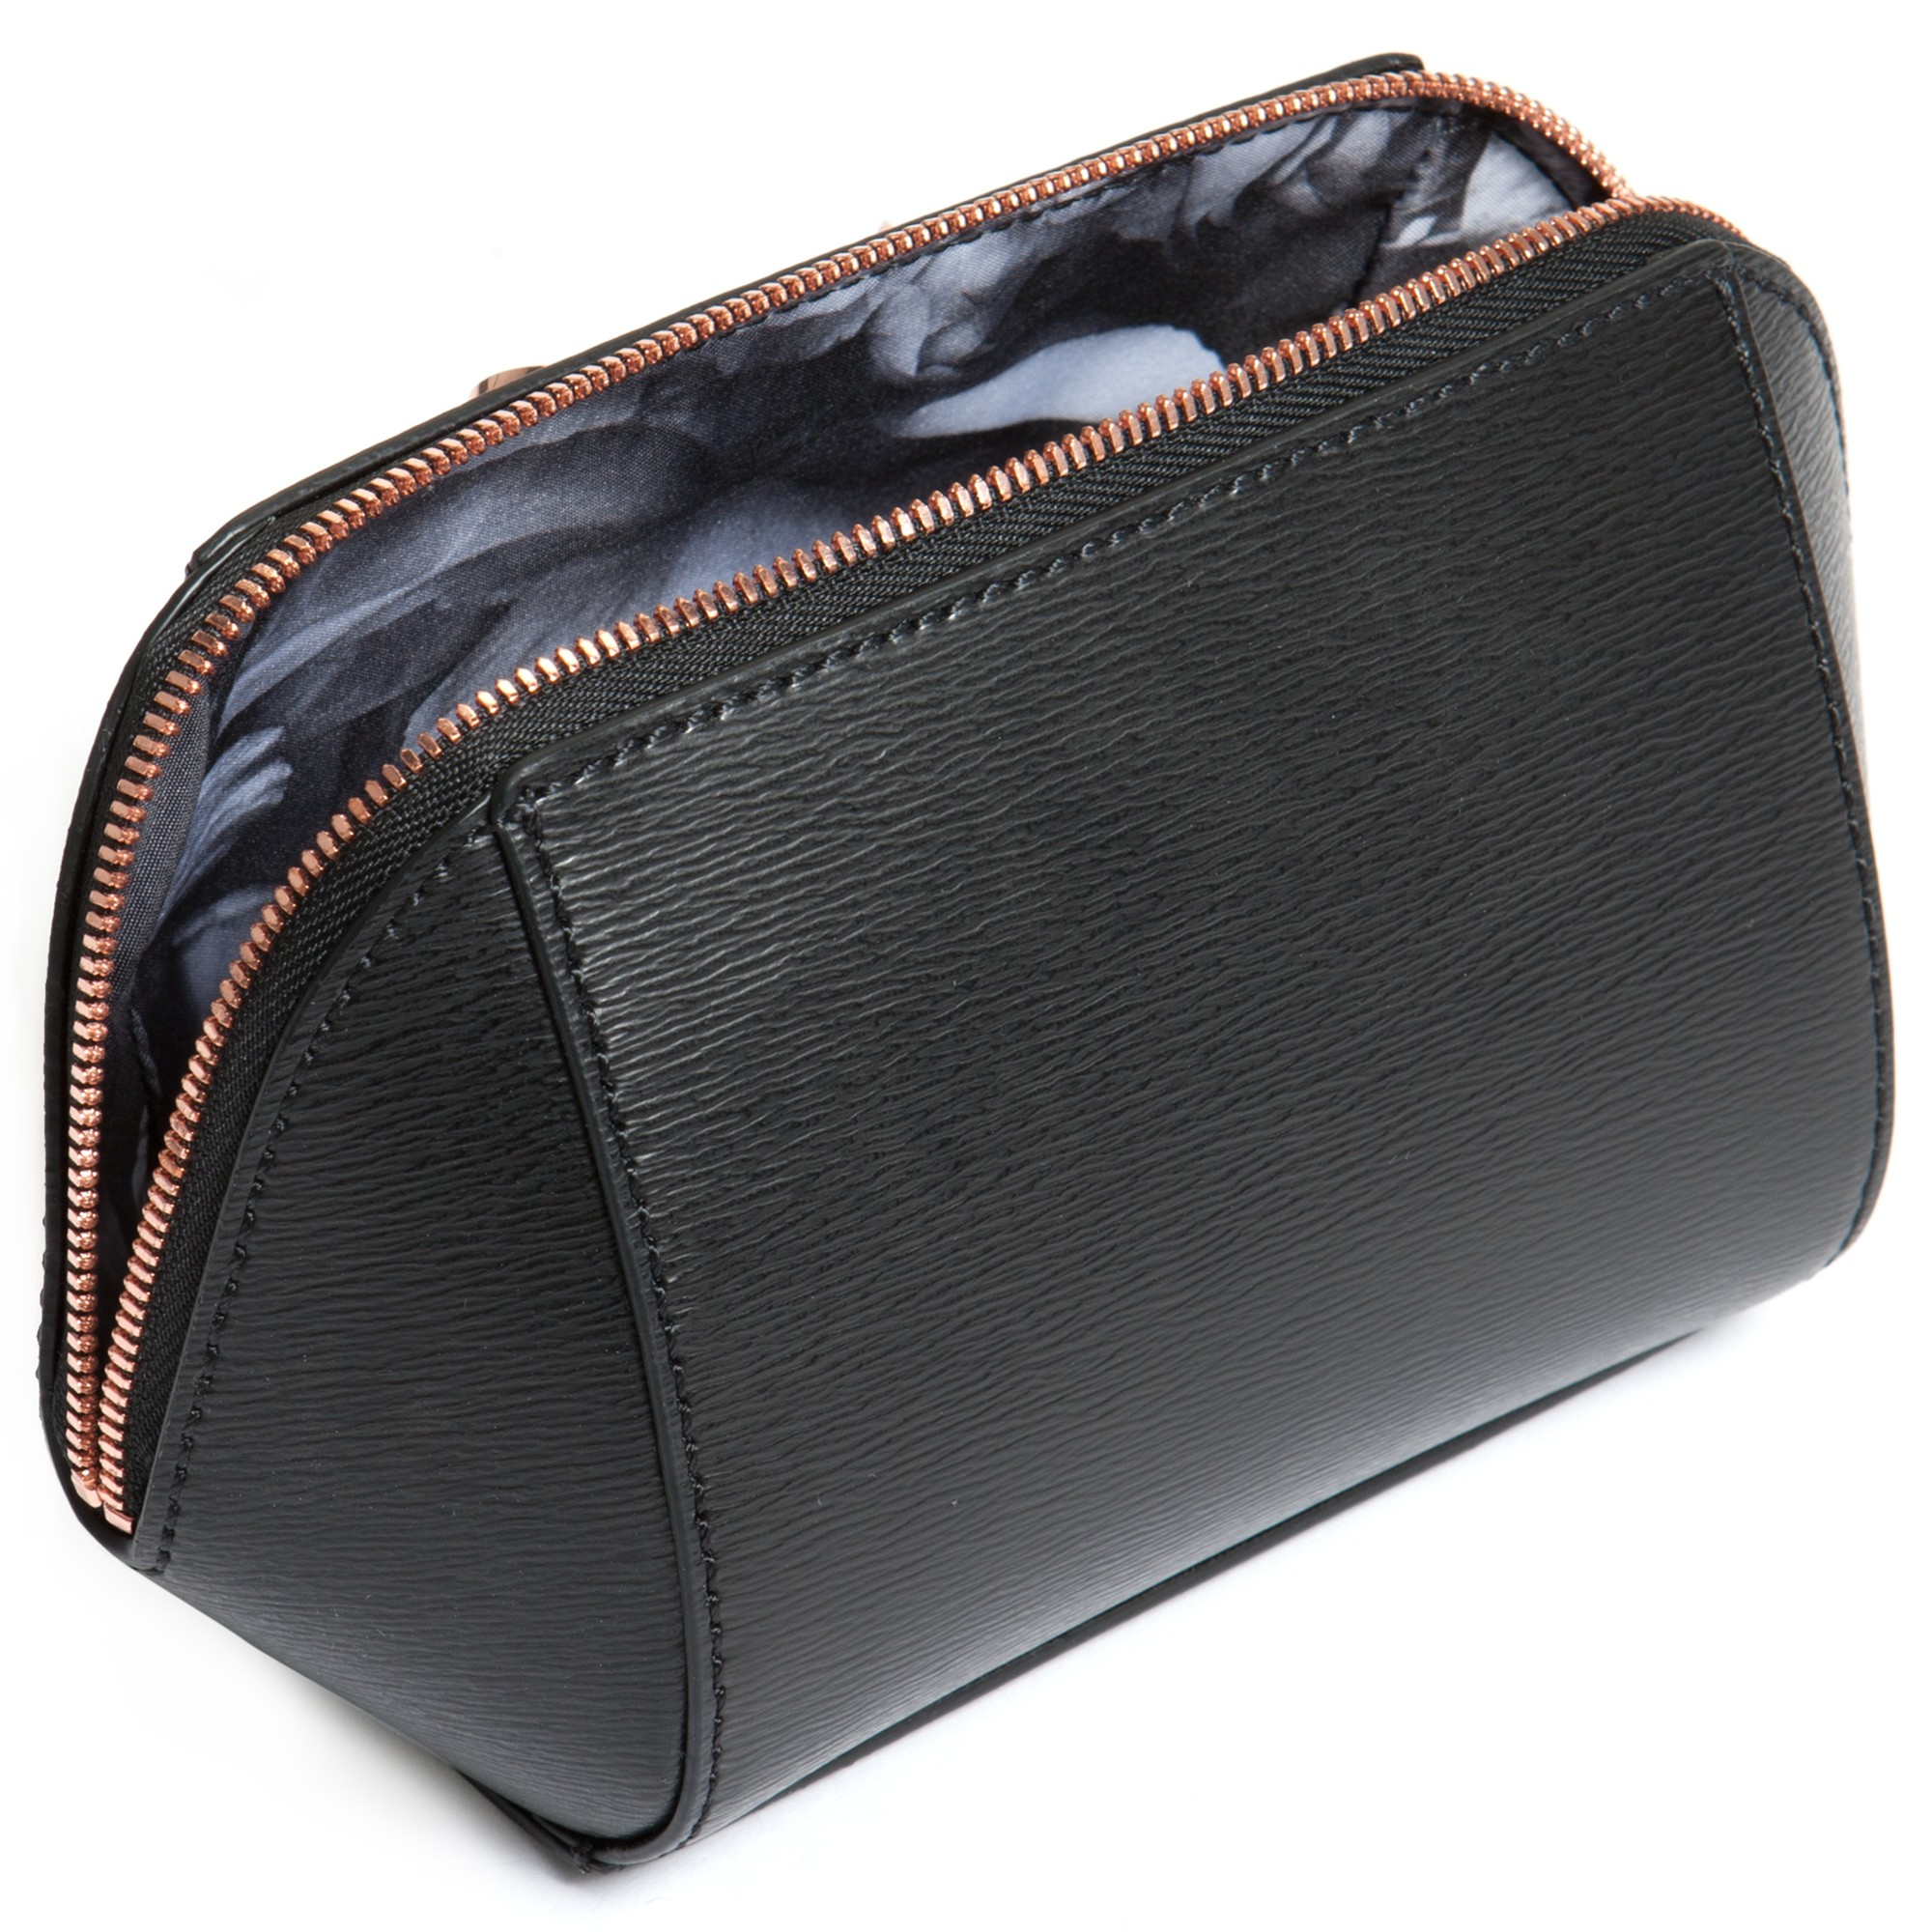 The OTTO Genuine Leather Makeup Bag is designed and crafted with the purpose of producing a product that is not only a result of top quality leather craftsmanship but also a convenient and modern accessory that one can rely on.